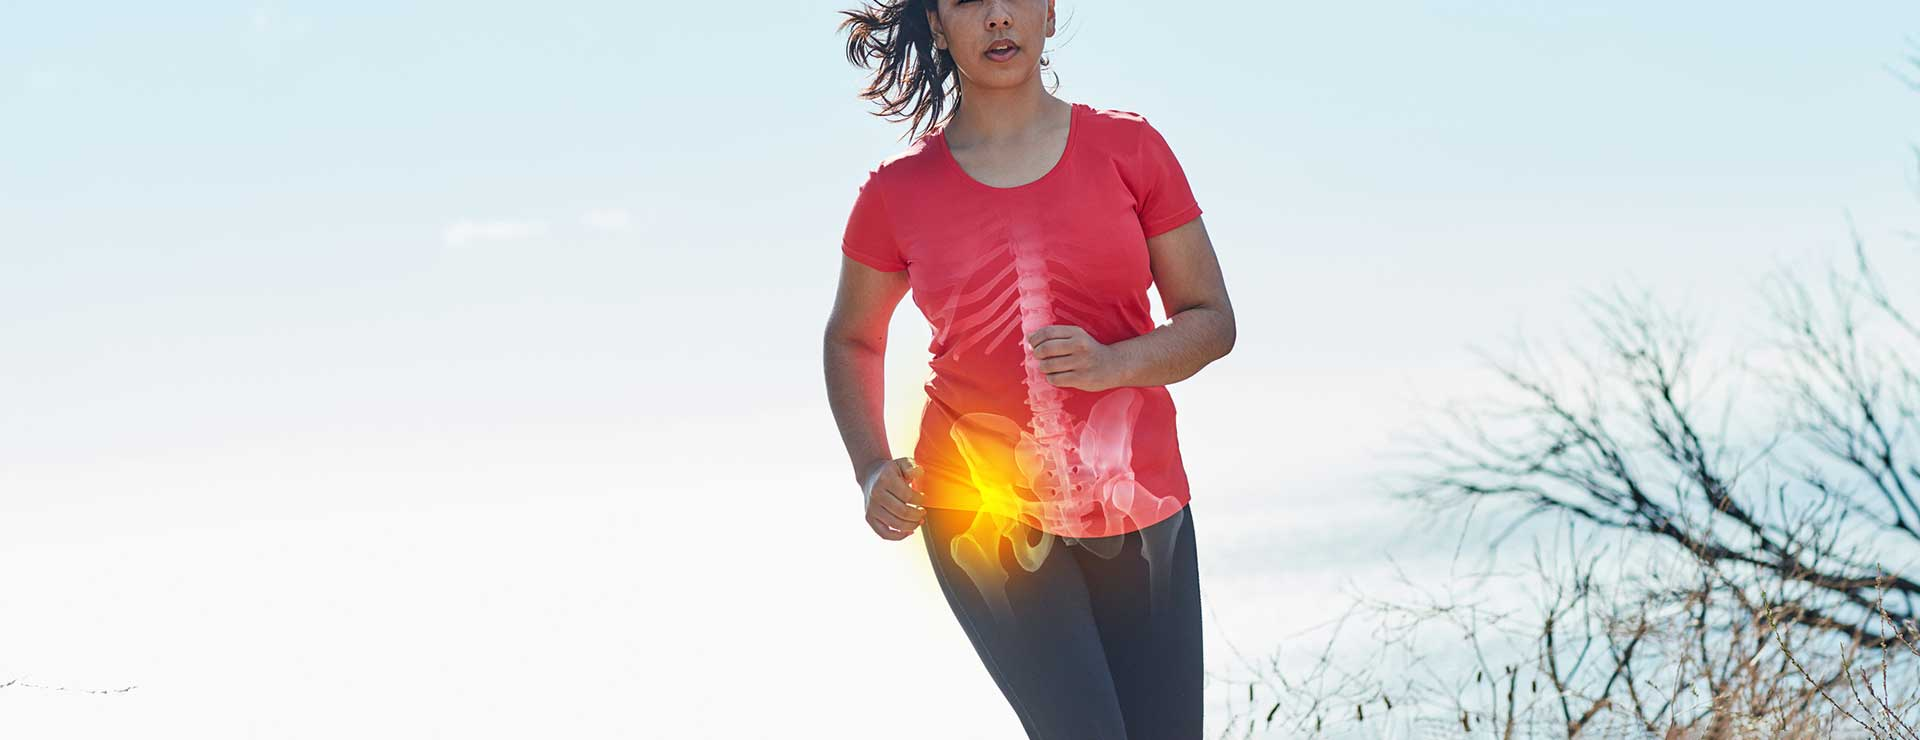 Jogger running outside with x-ray overlay over hip.